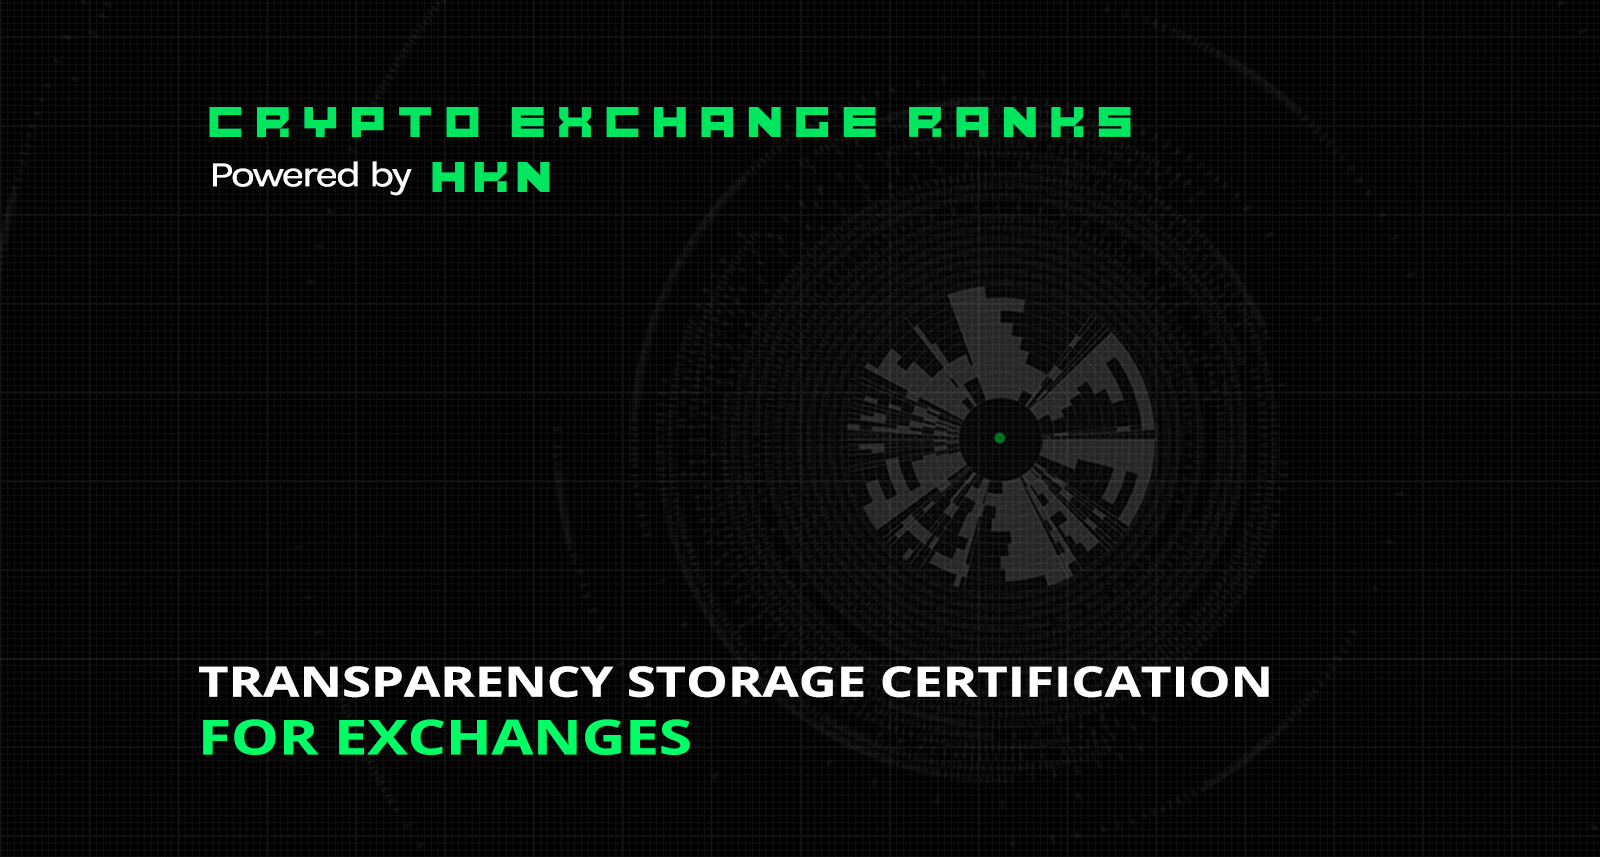 Transparency Storage Certification For Exchanges